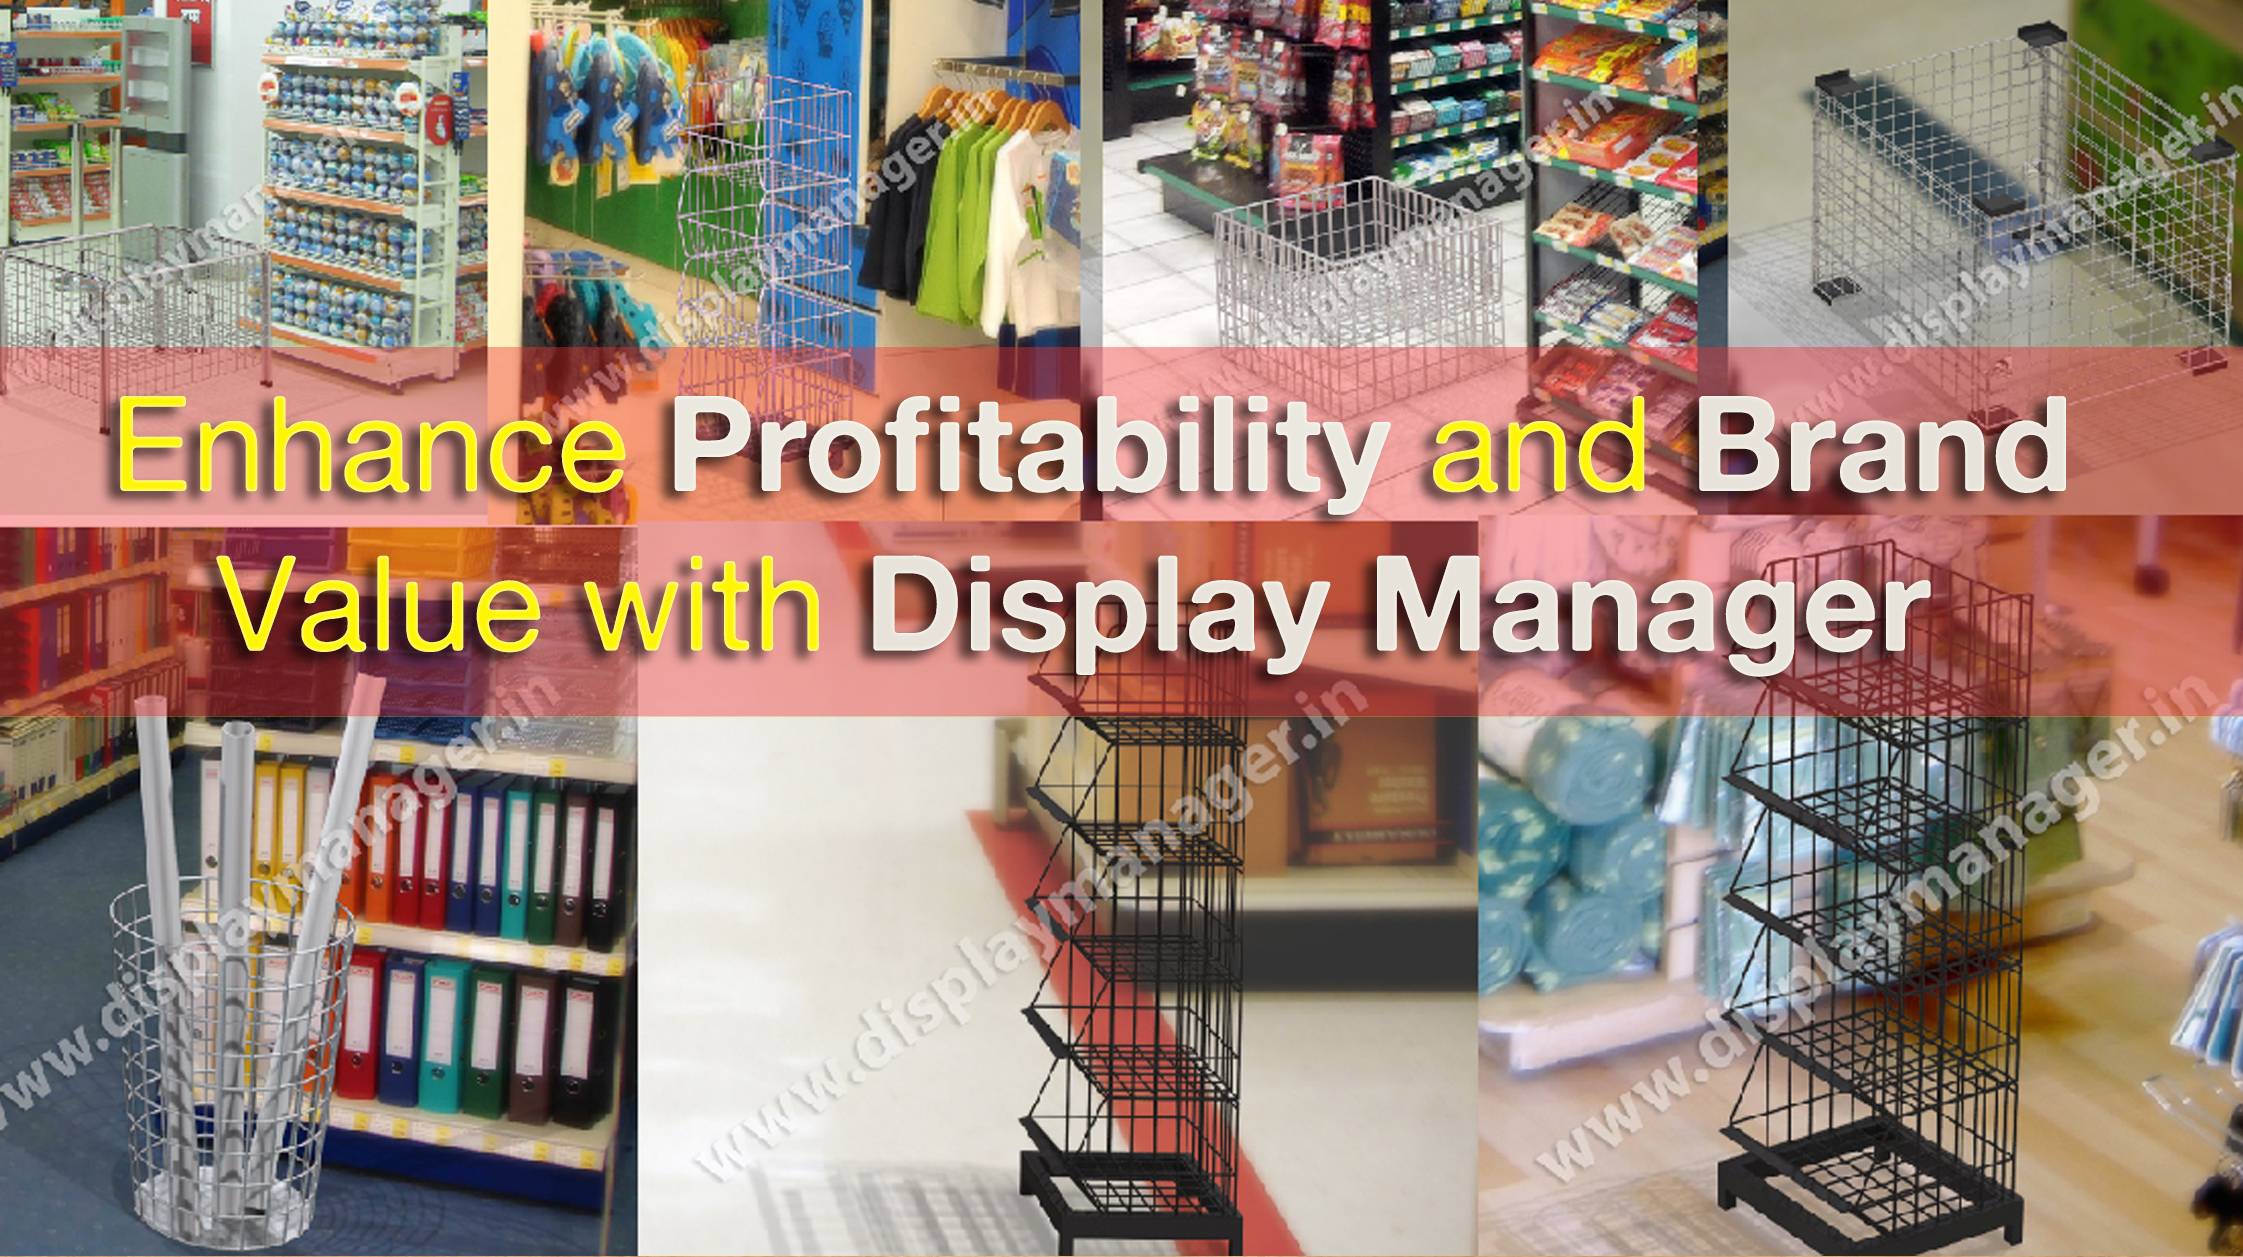 Enhance Profitability and Brand Value with Display Manager